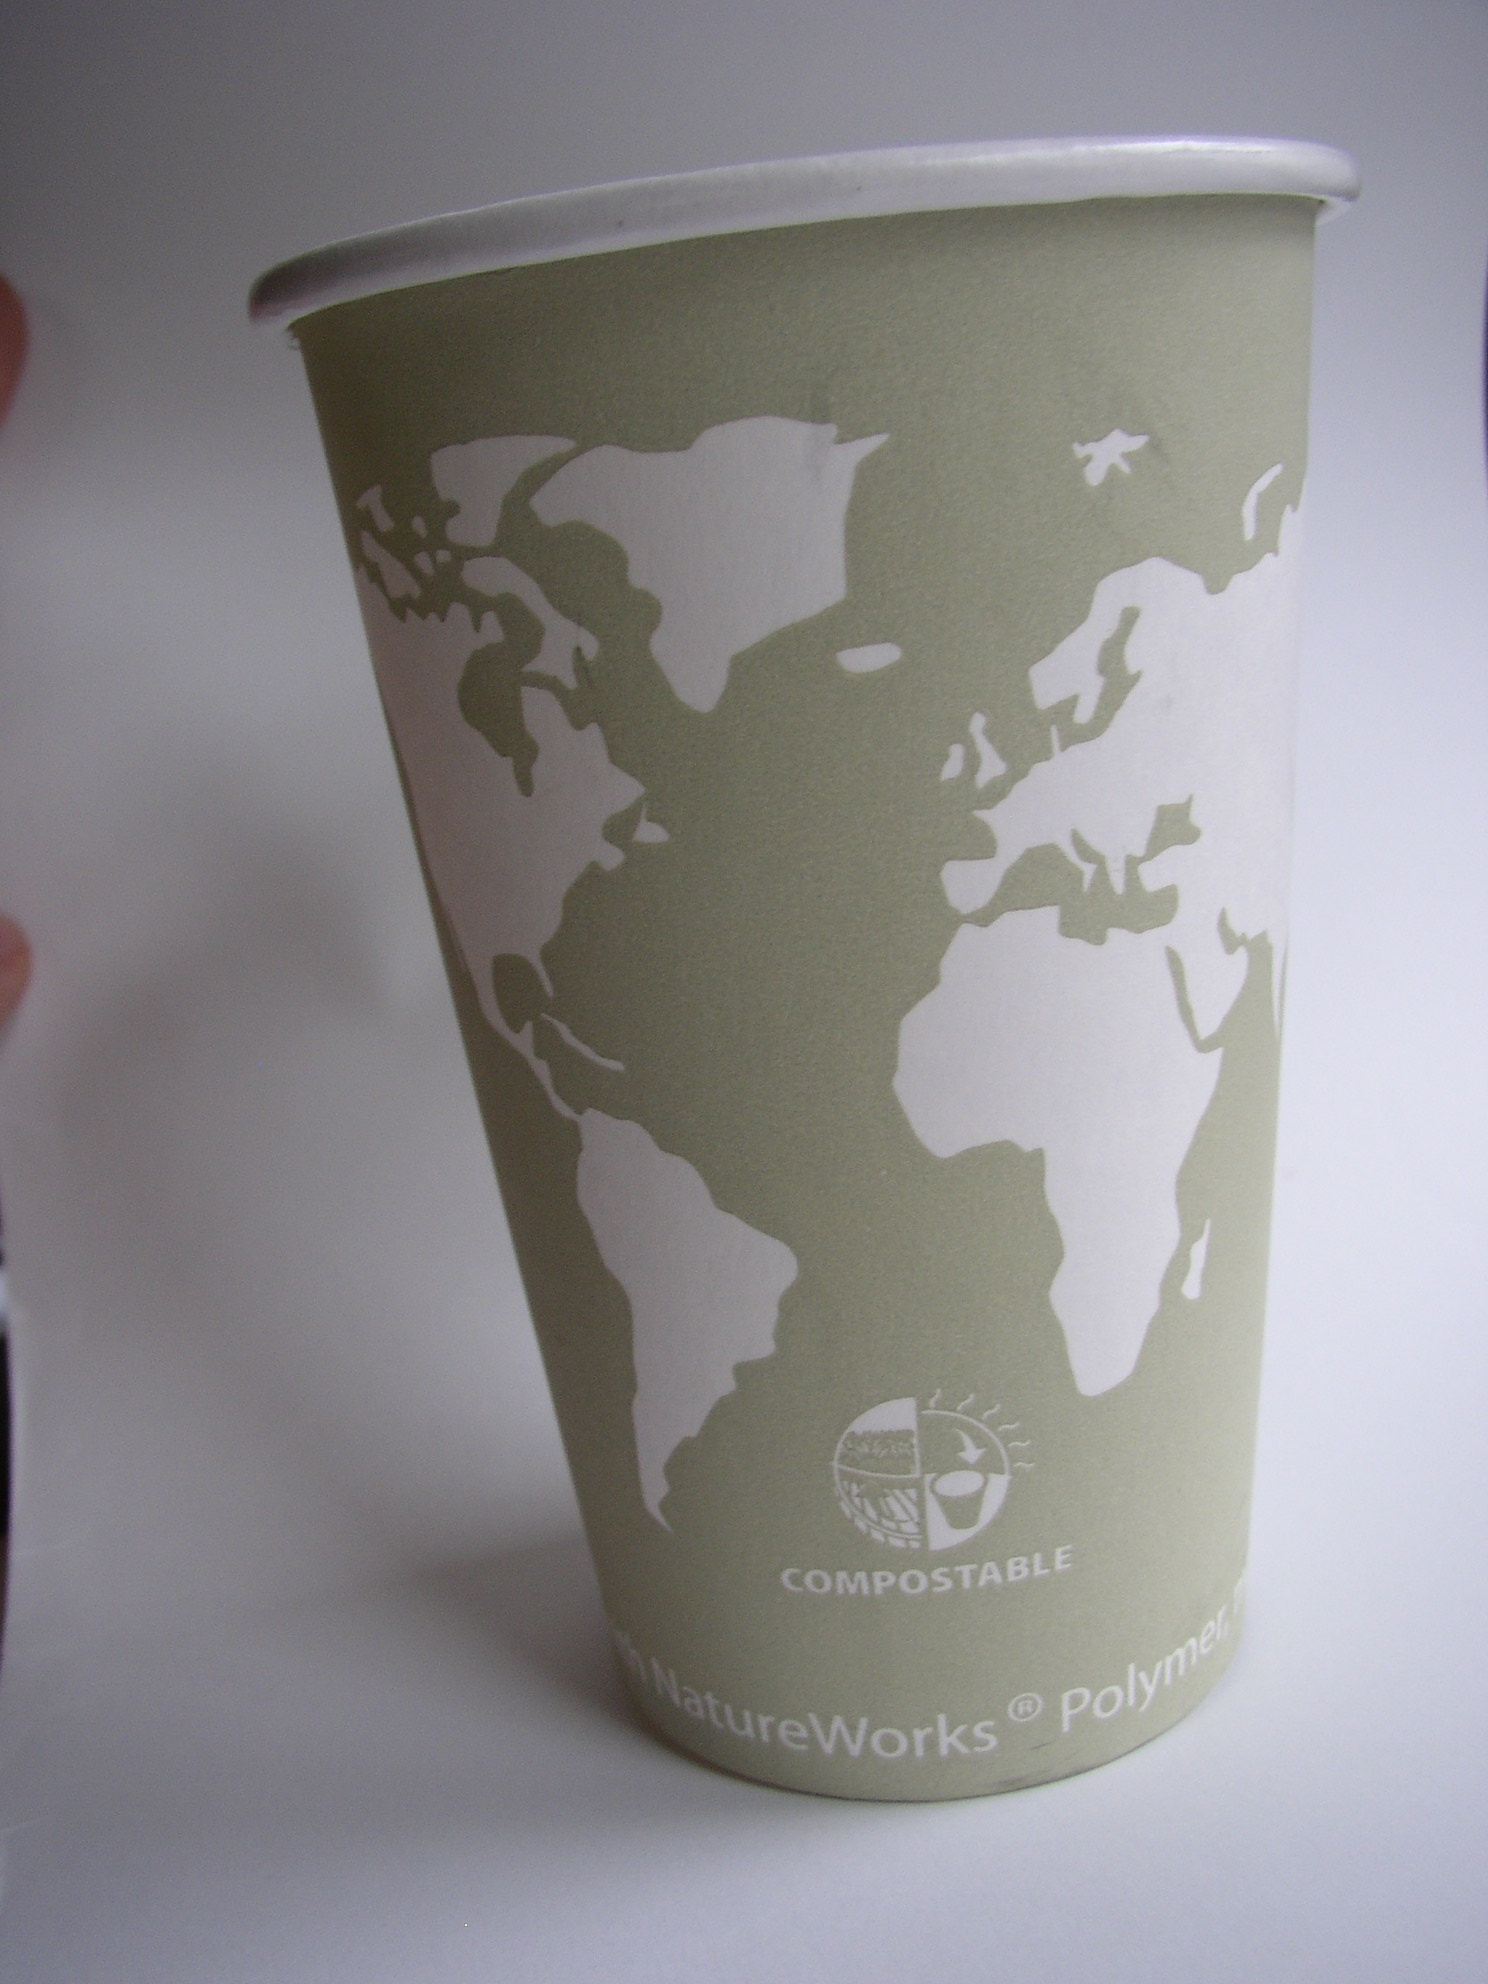 continents outlined on a coffee cup